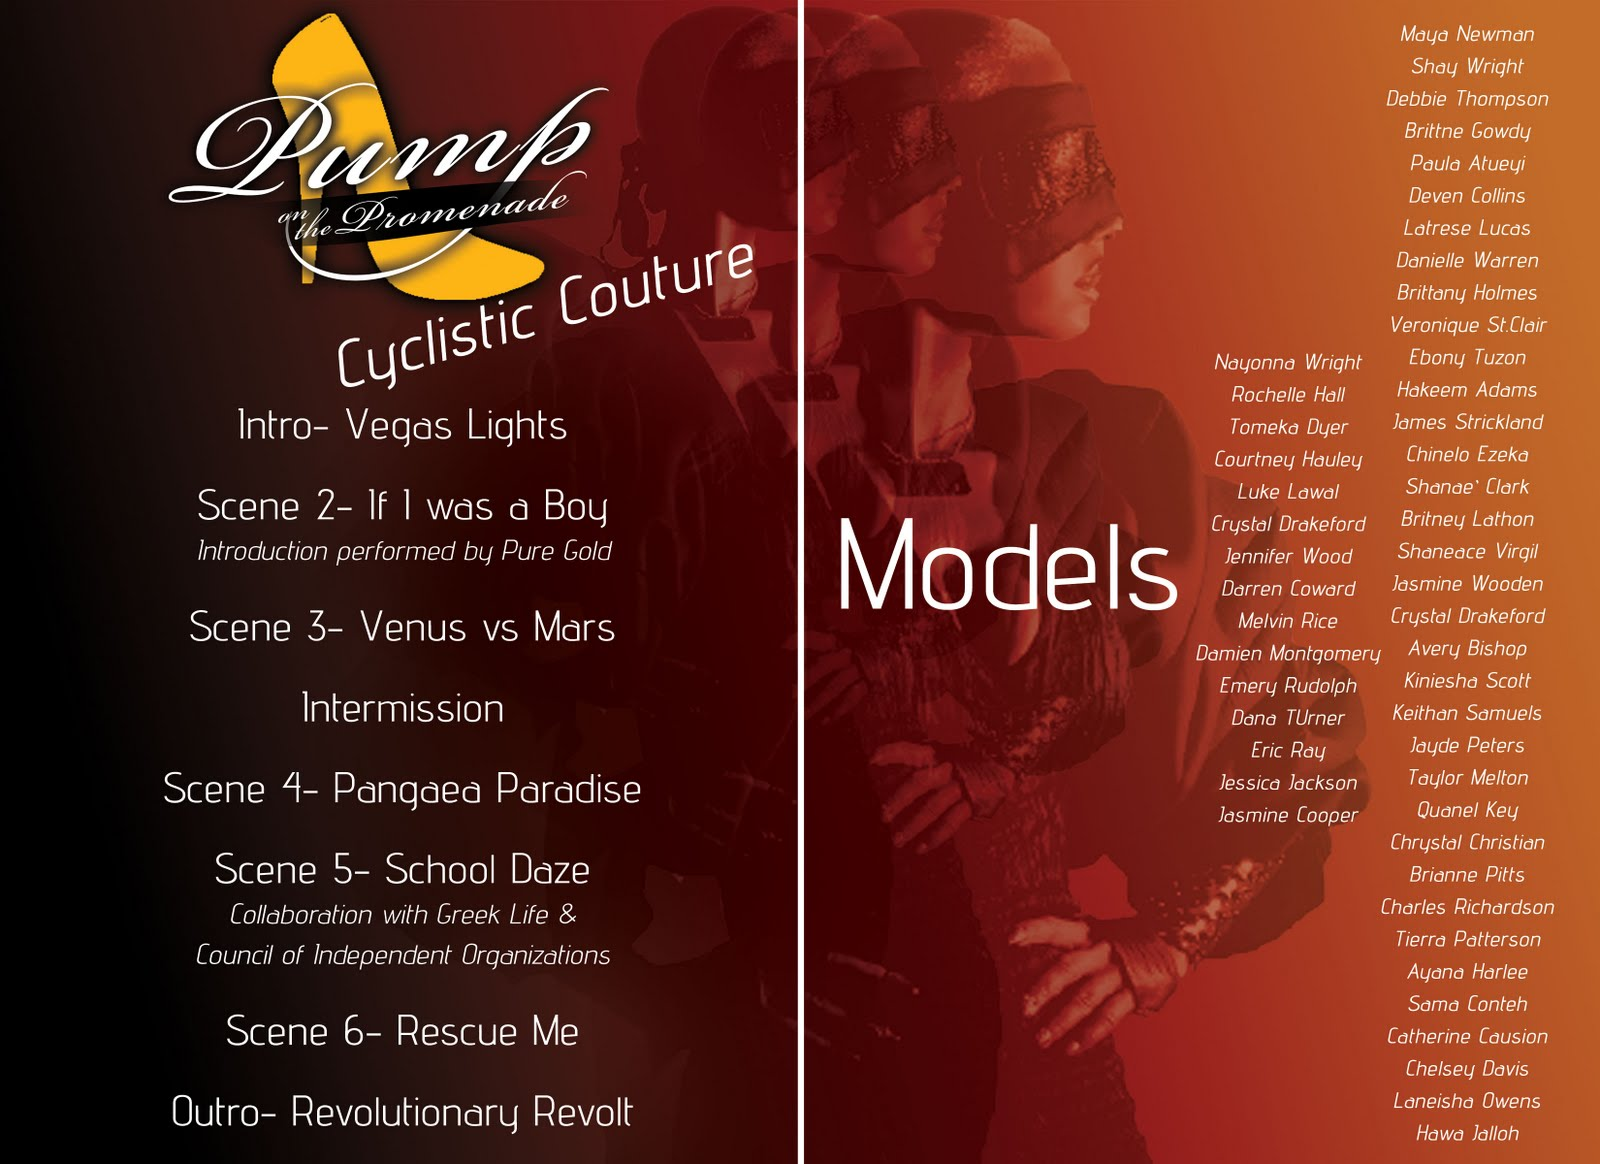 Fashion Show Program Template Free Download